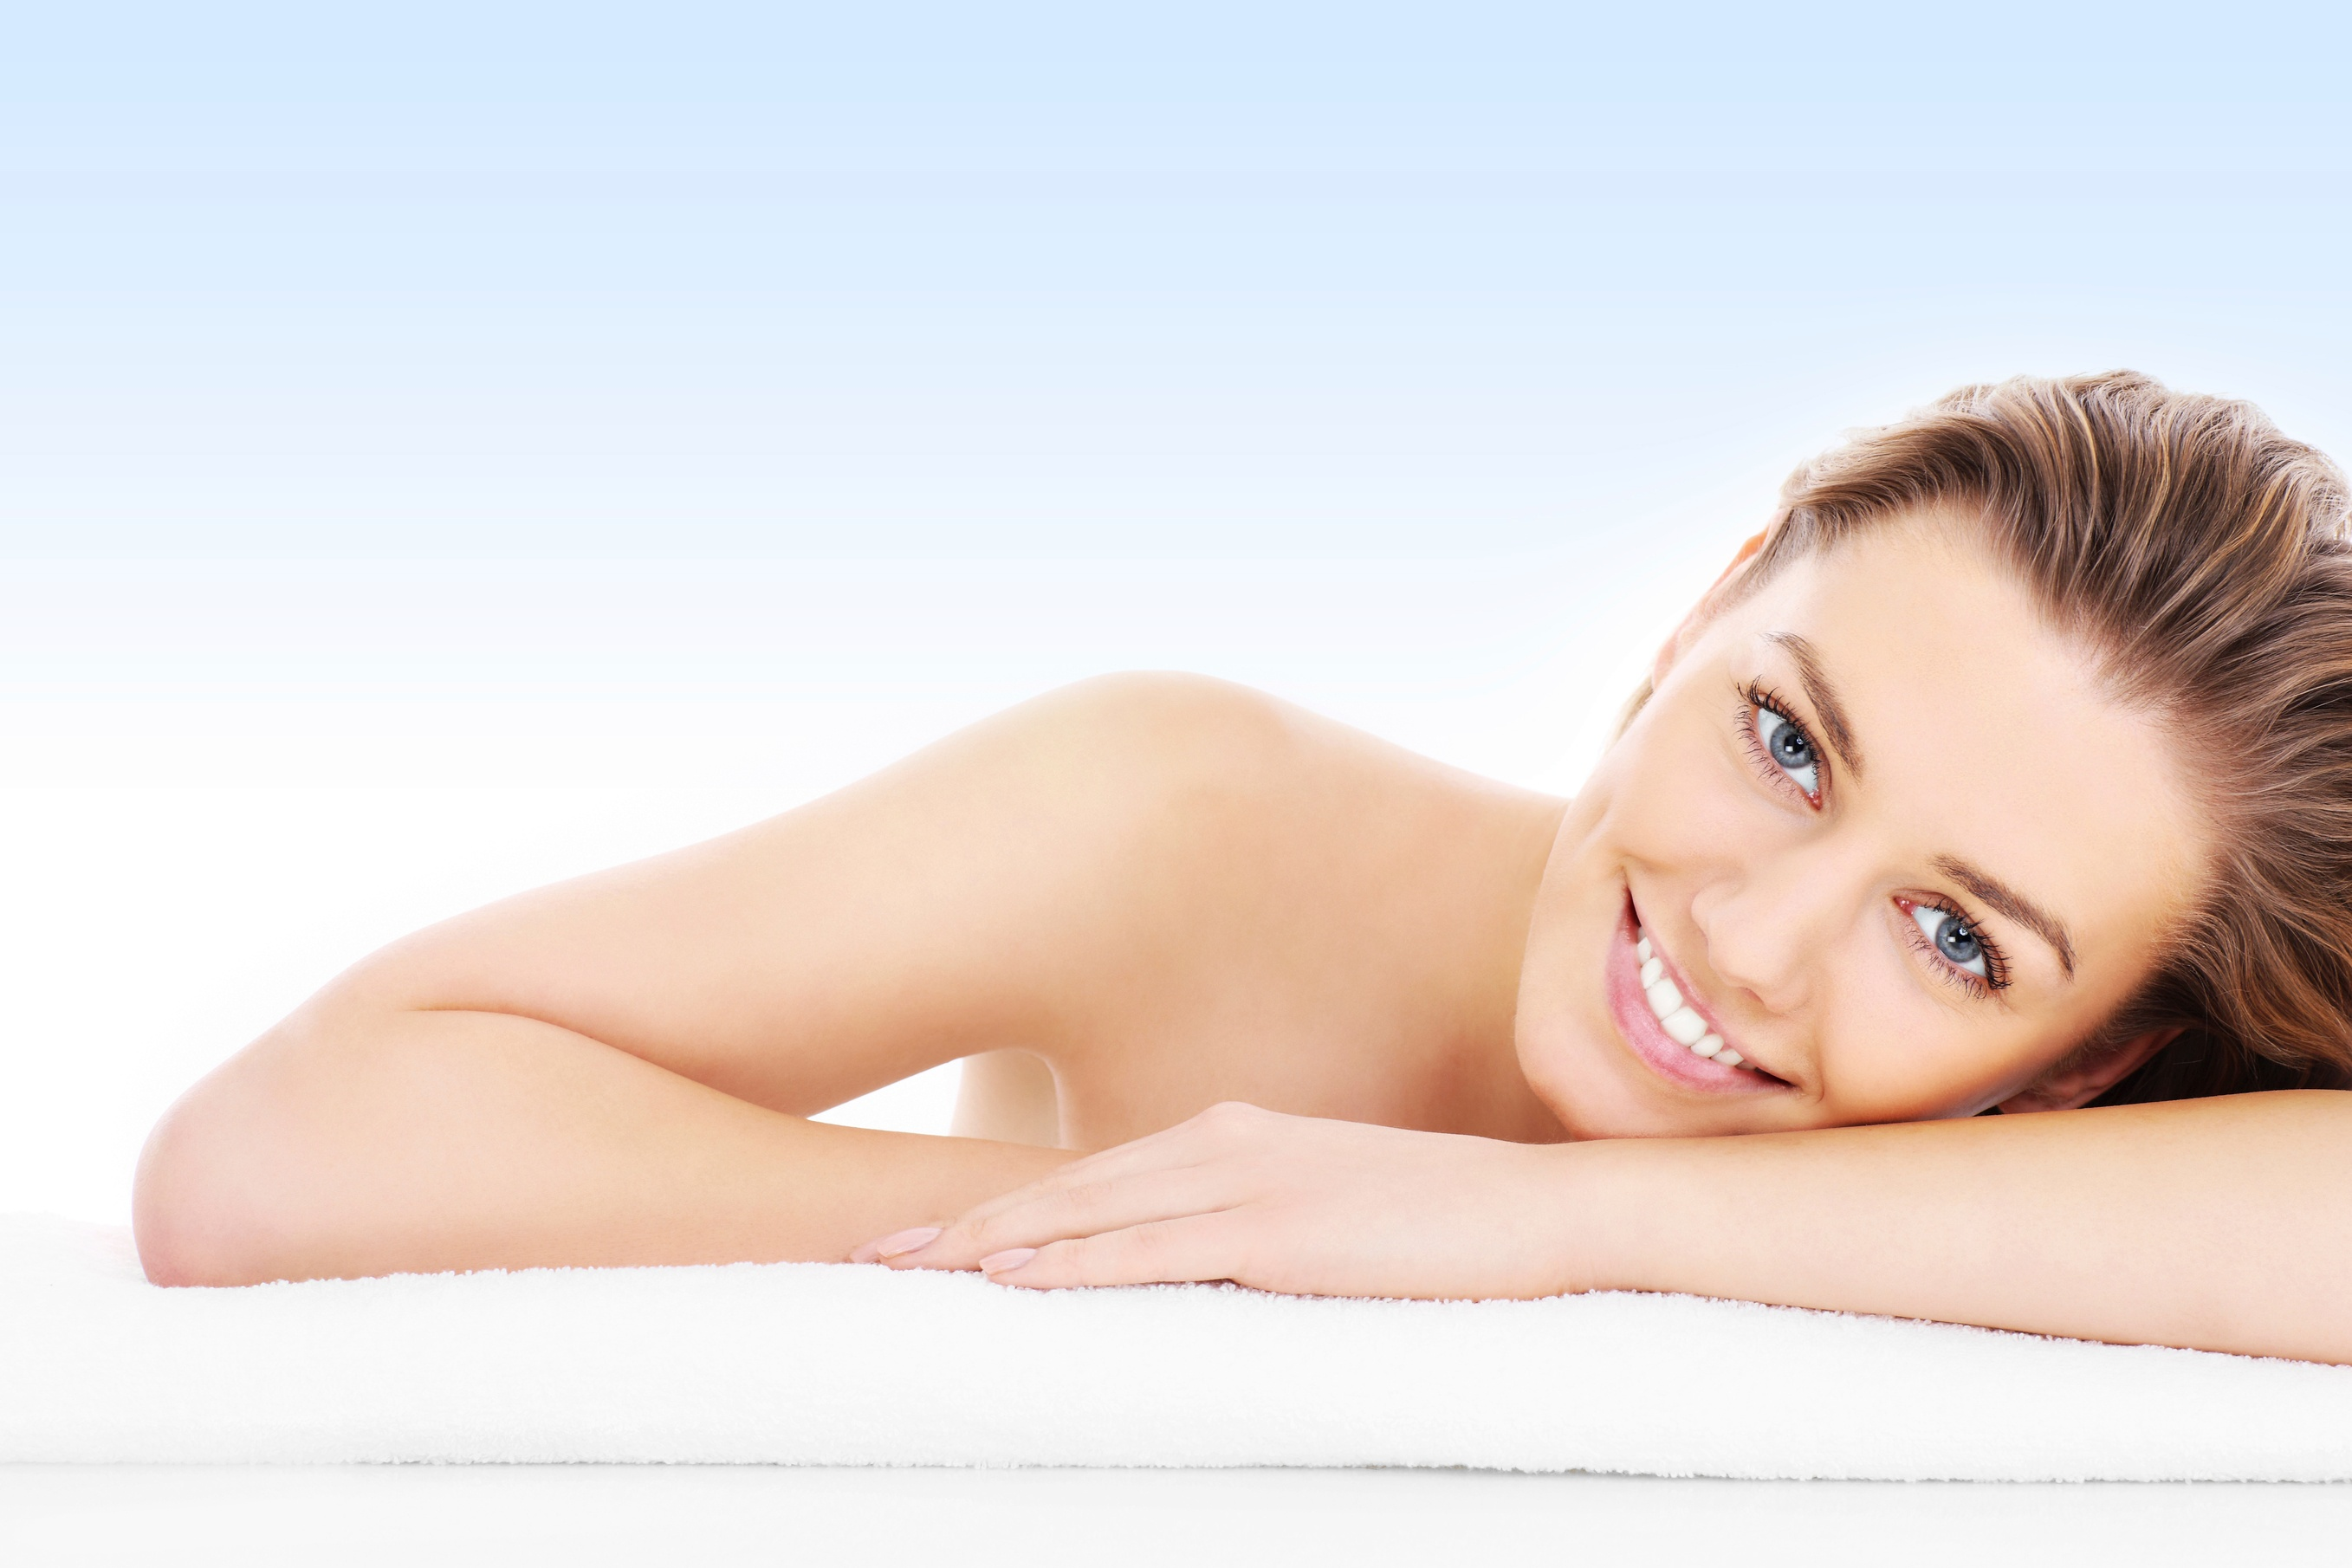 Top 10 Steam Bath Benefits You May Not Have Considered